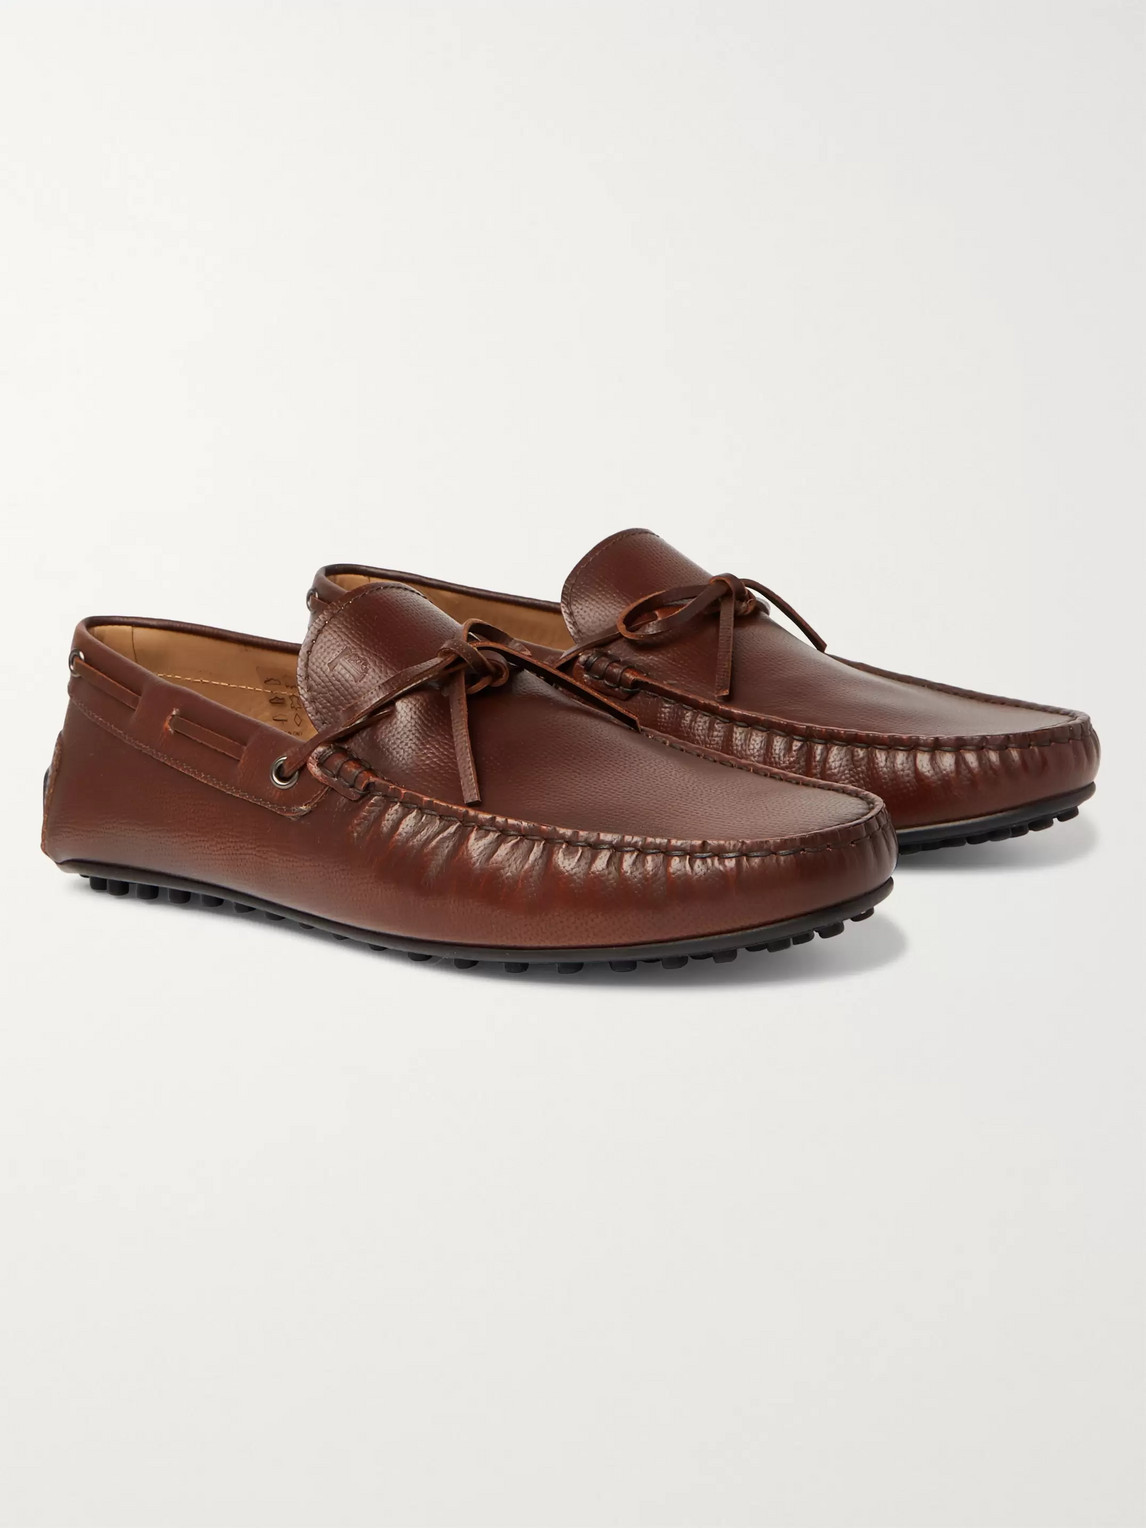 Tod's City Gommino Driving Shoes In Leather In Brown